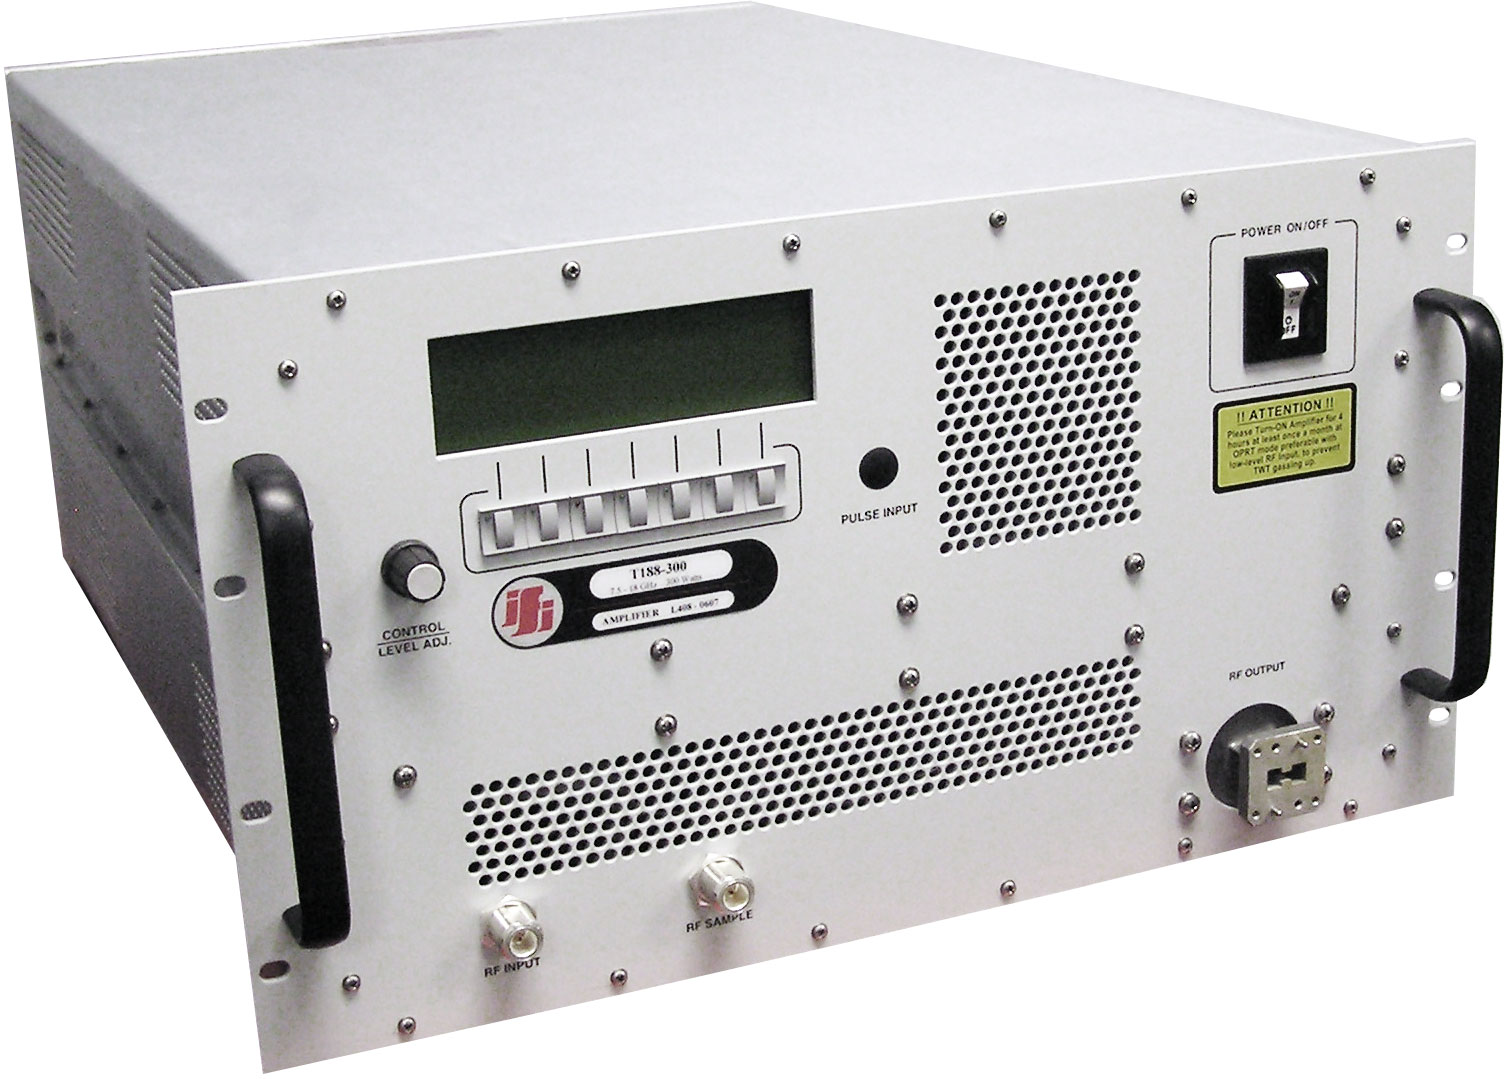 IFI T188-300 TWT Amplifier